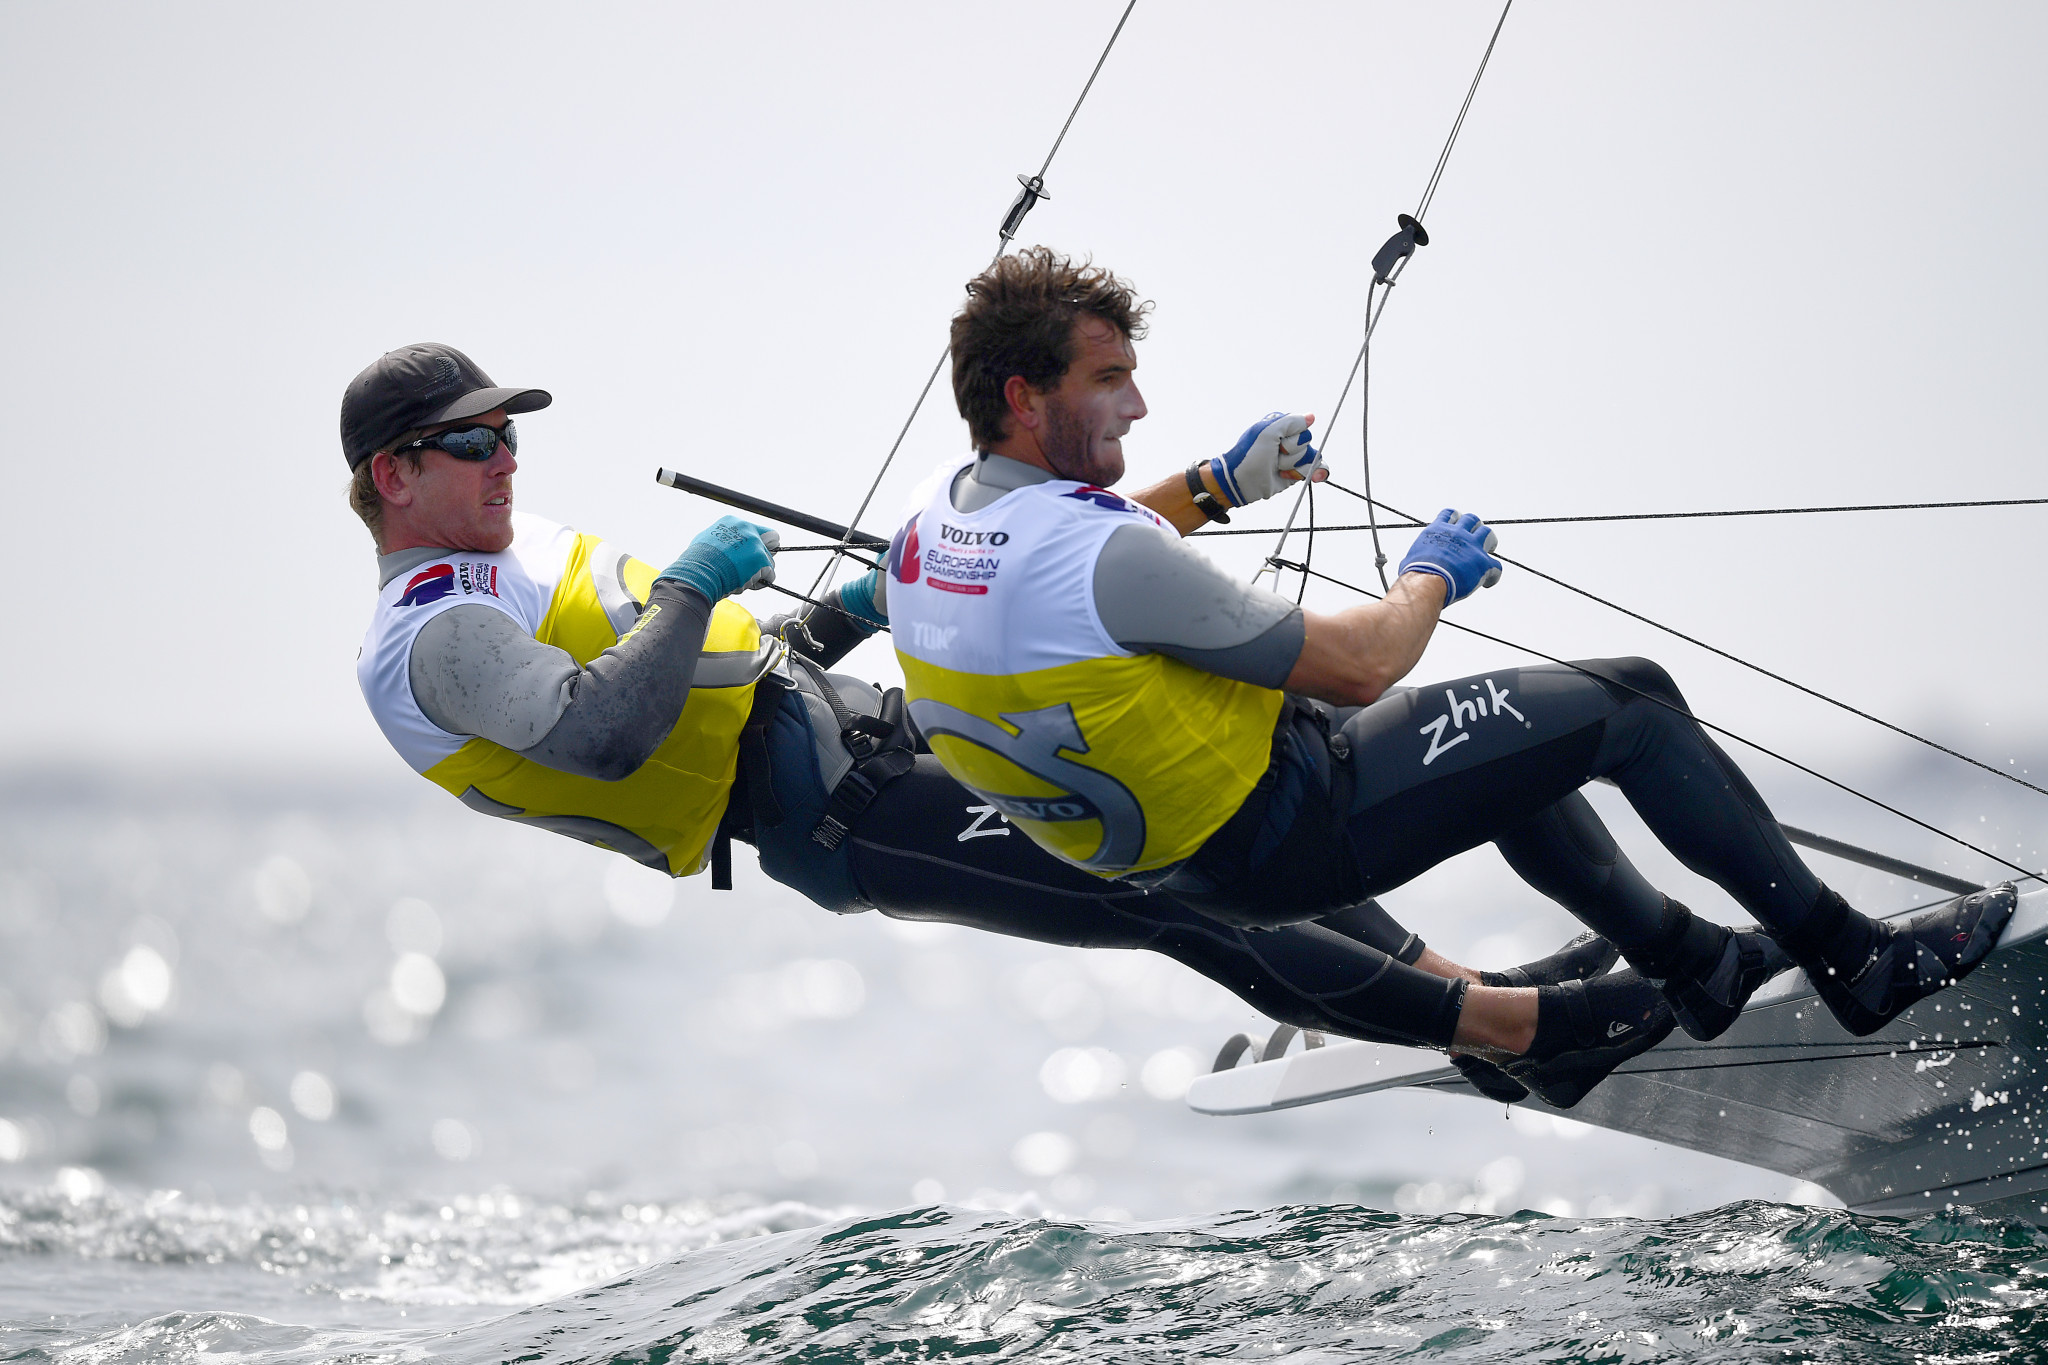 New Zealand's Rio 2016 49er gold medallists have taken the lead in the World Championships on the home water of Auckland ©Getty Images